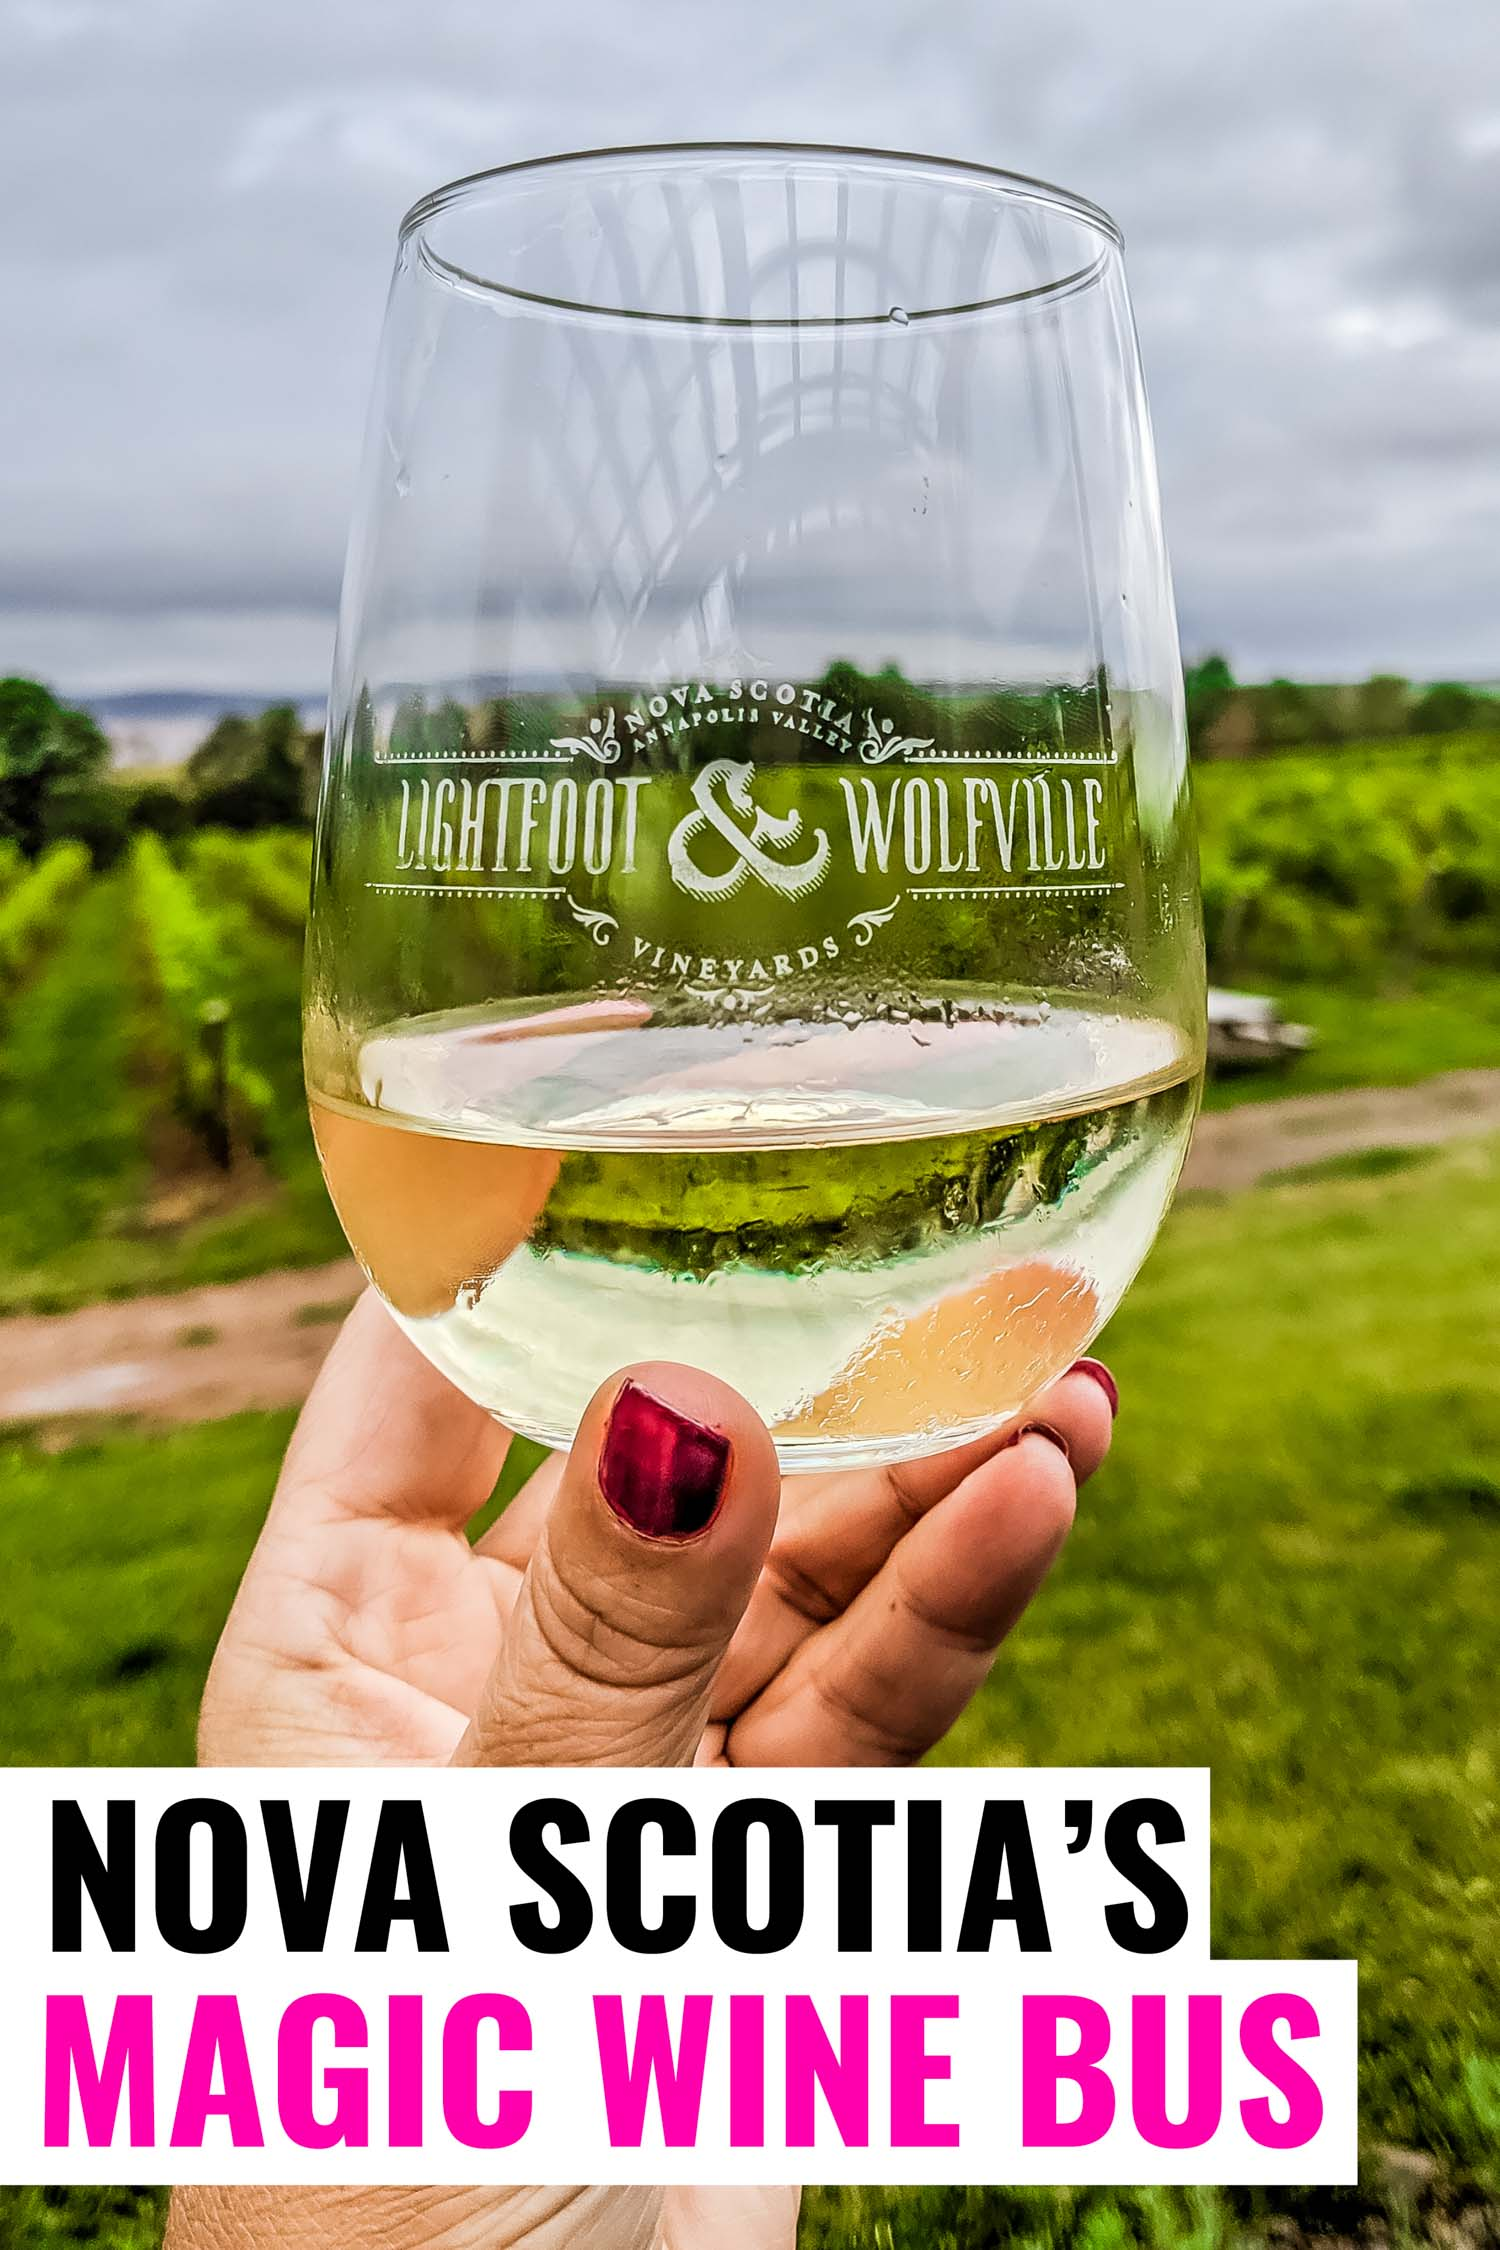 Glass of Nova Scotian wine in hand with winery vineyards in background.